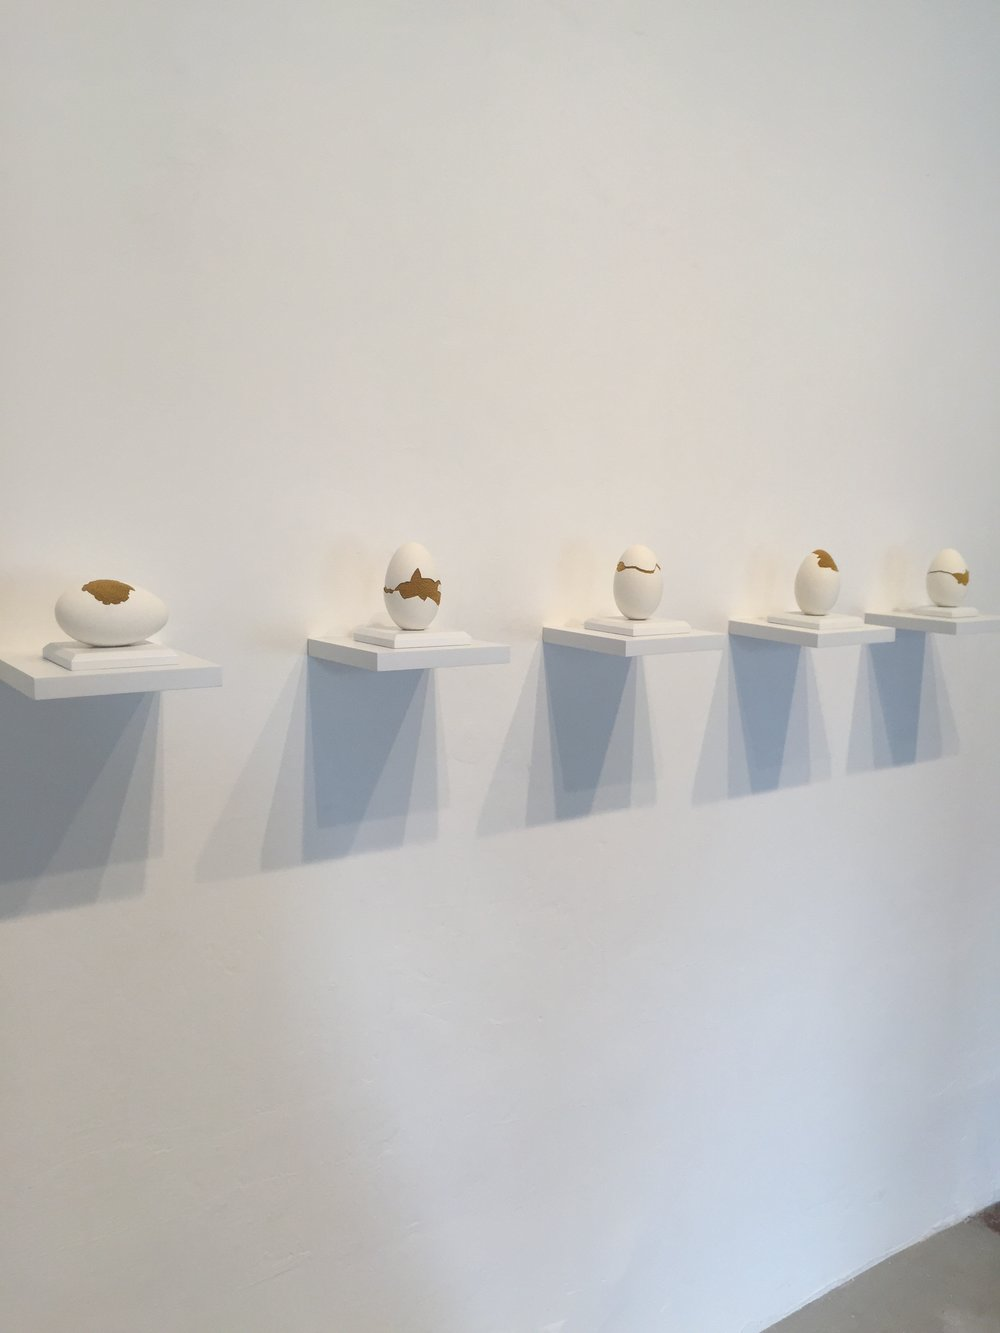 """Esther Traugot, """"Patched Goose Egg #3-#7,"""" 2018, goose egg shell, dyed cotton string, wood mount and shelf, ~4.75 x 6 x 6 inches each"""